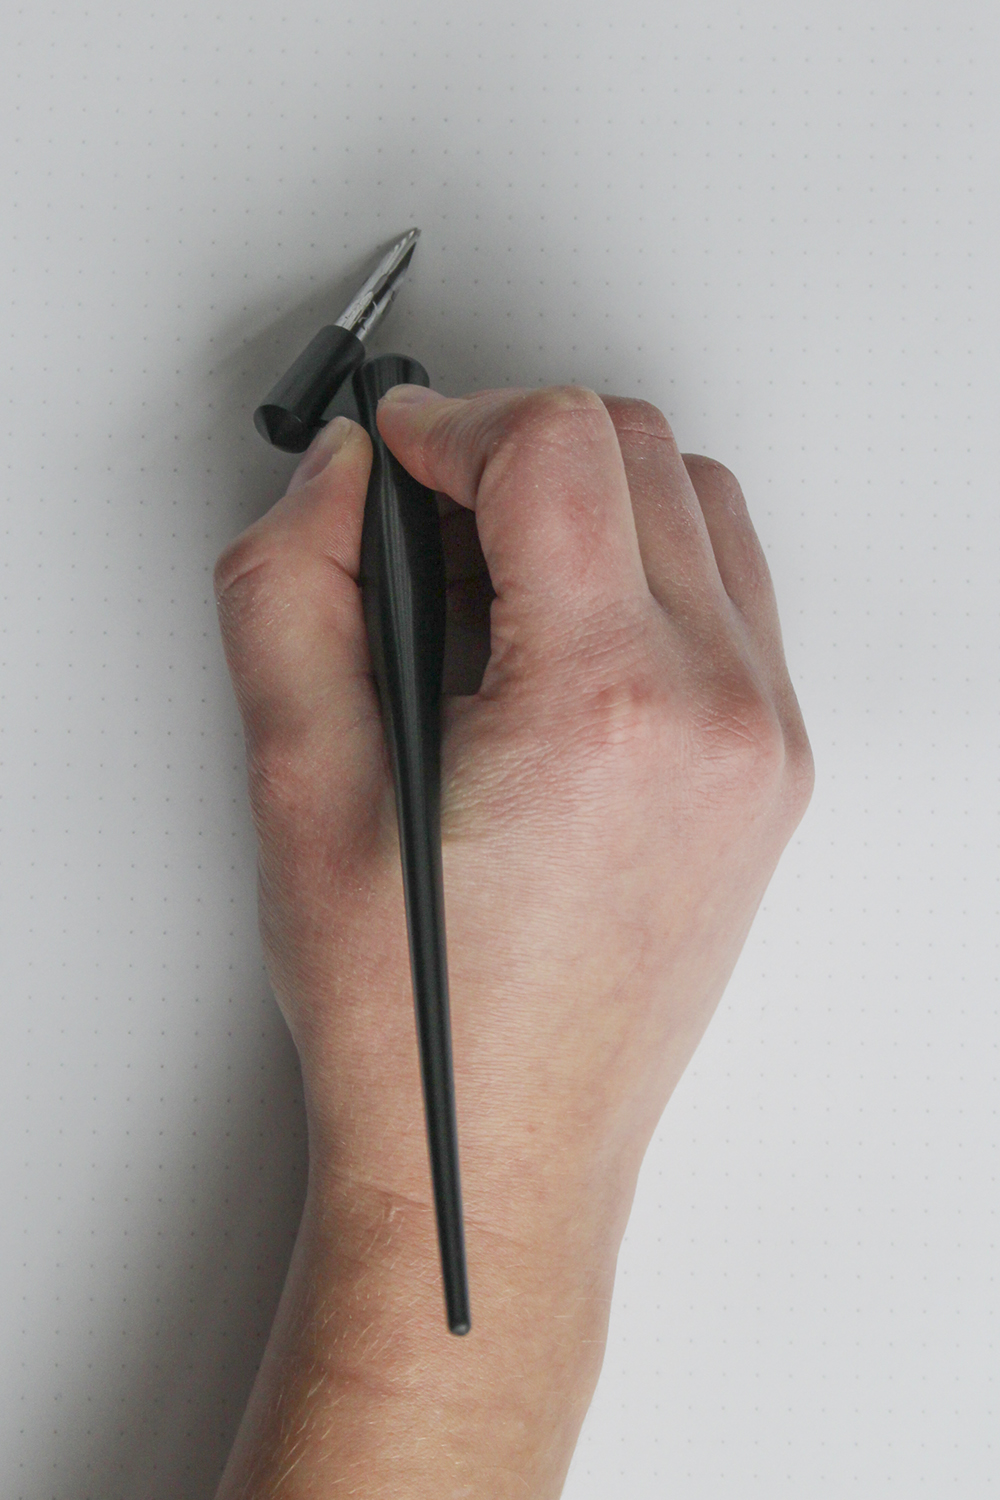 Learning how to hold your oblique pen